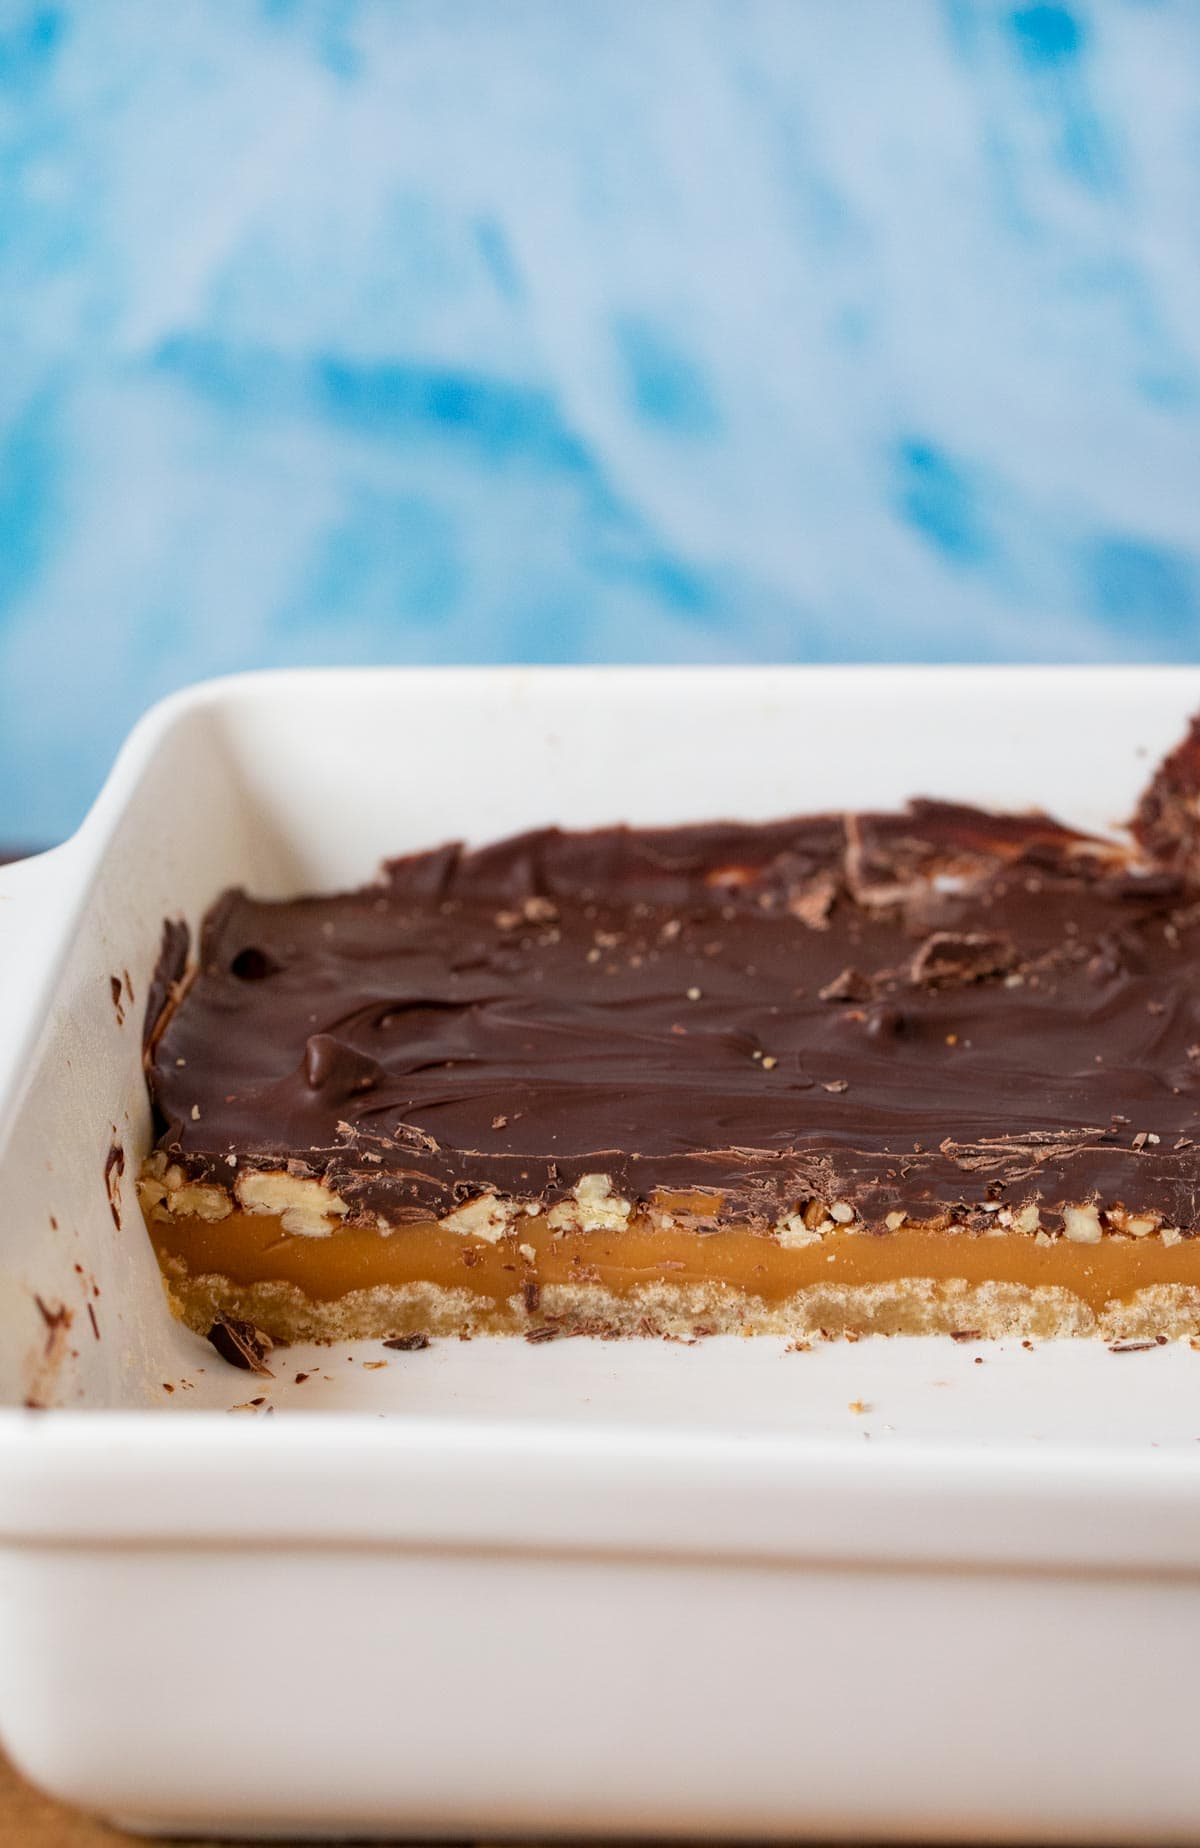 Turtle Bars cross-section in baking dish